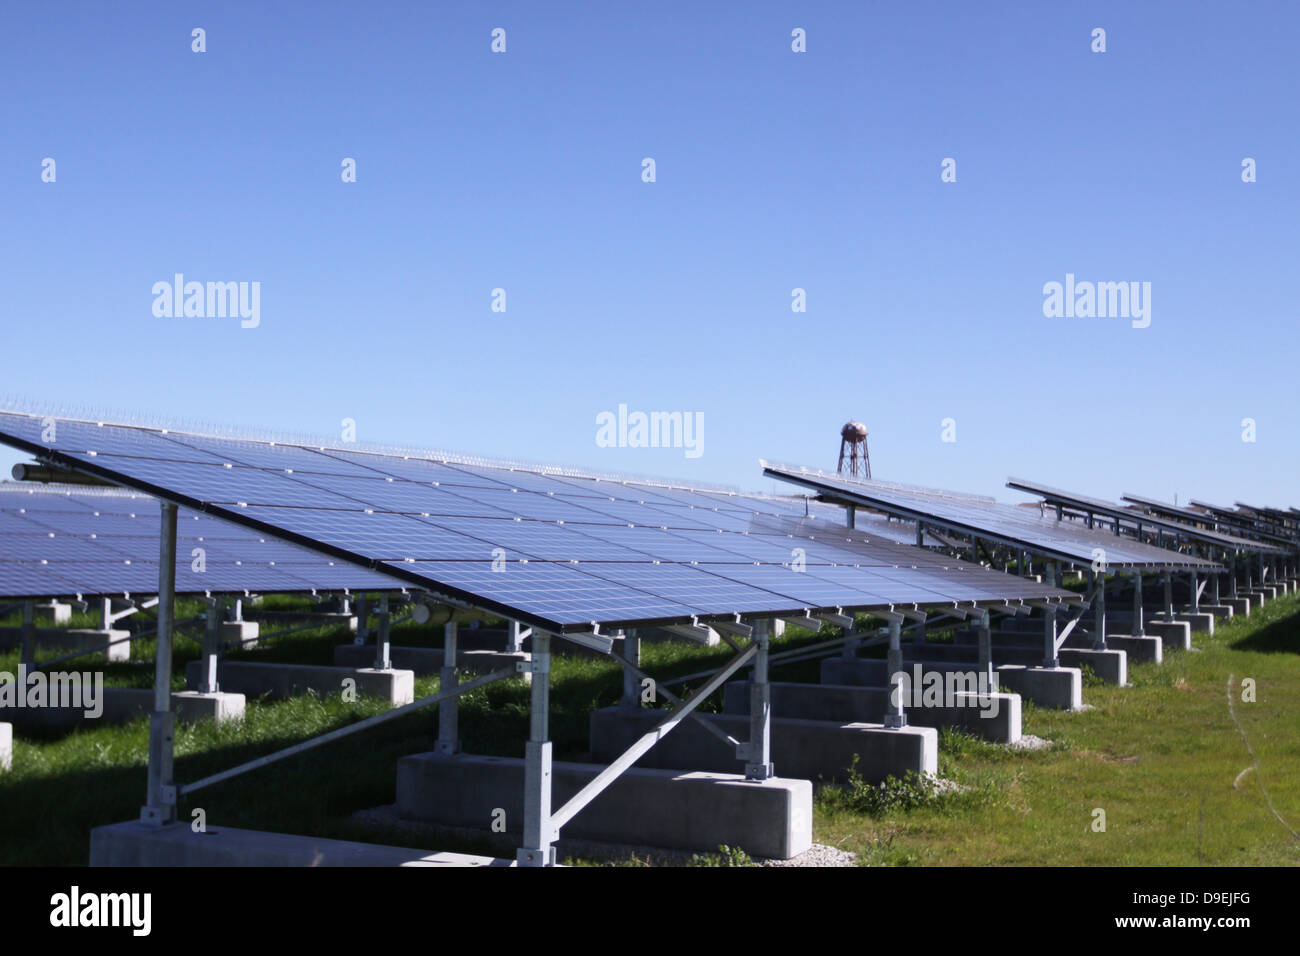 A photovoltaic system of solar cells. - Stock Image